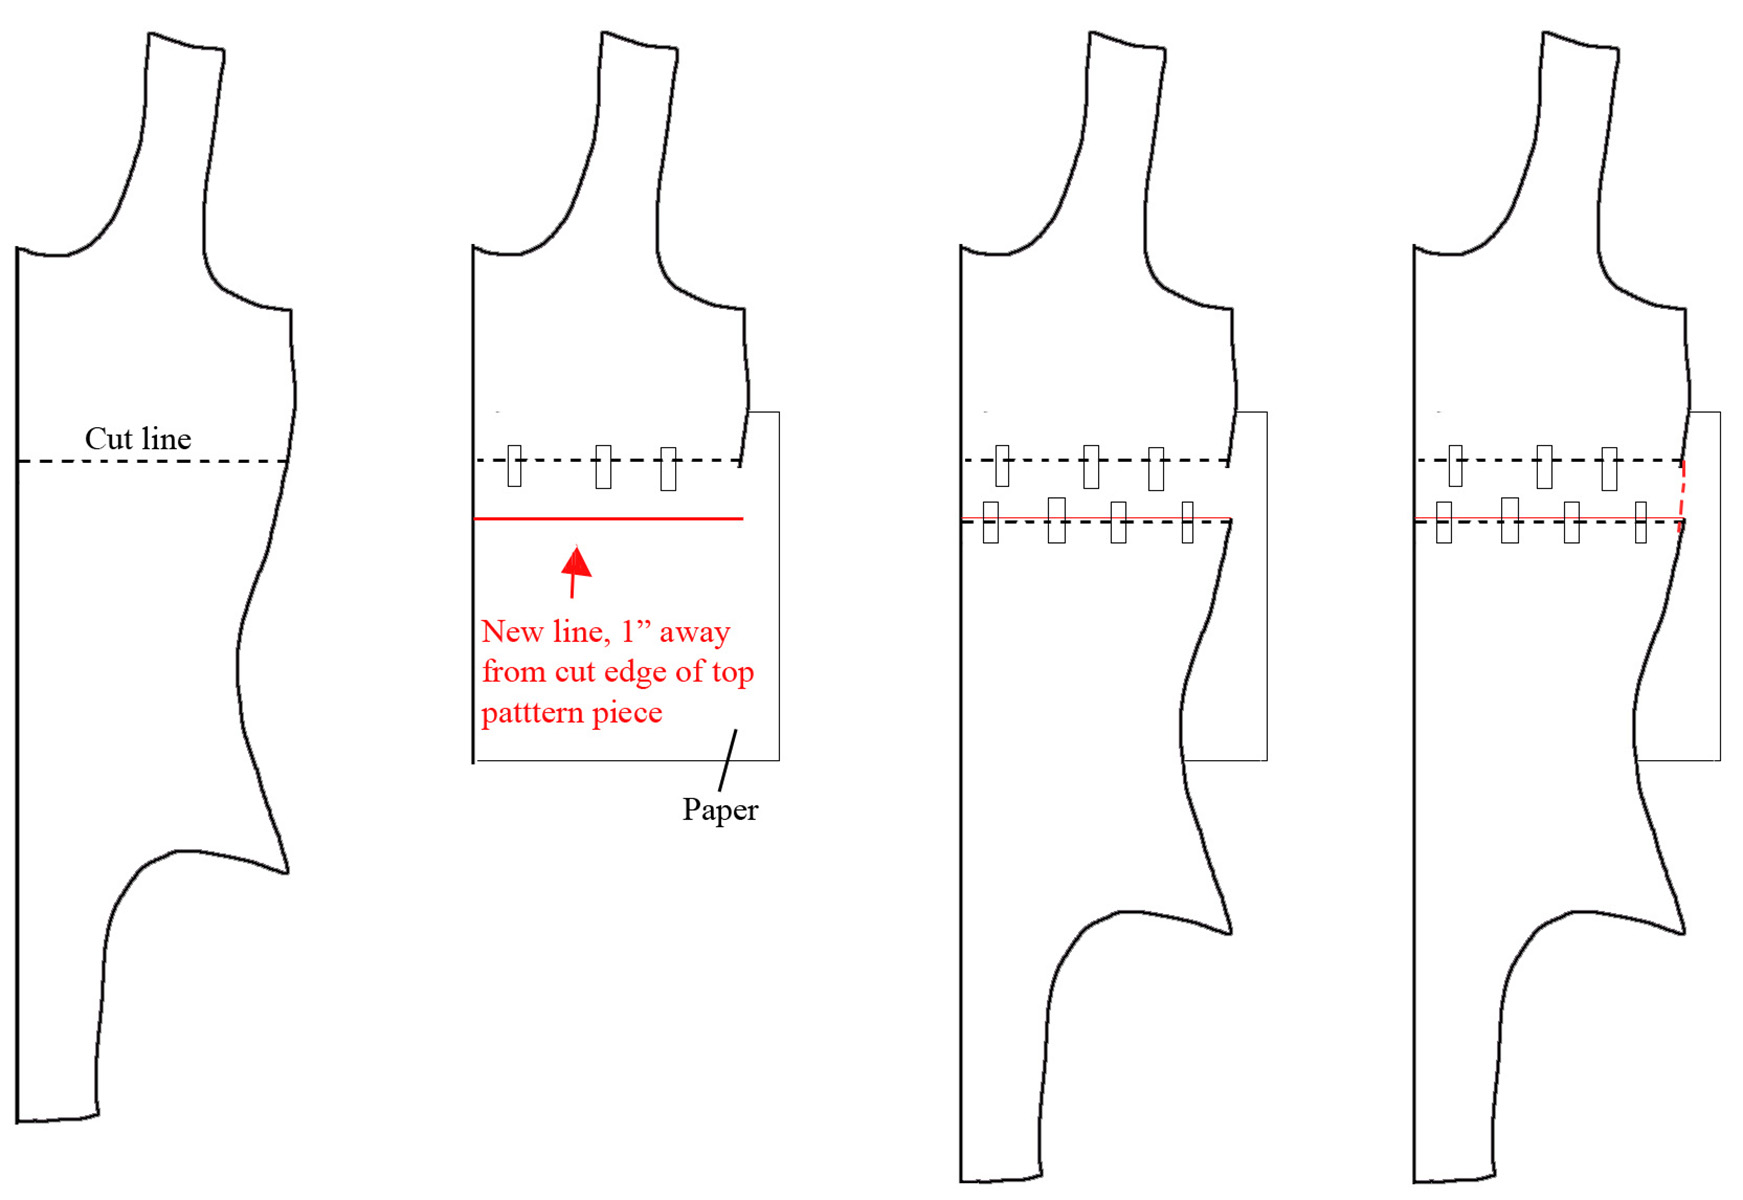 A hand dran diagram showing how to add length to a pattern.